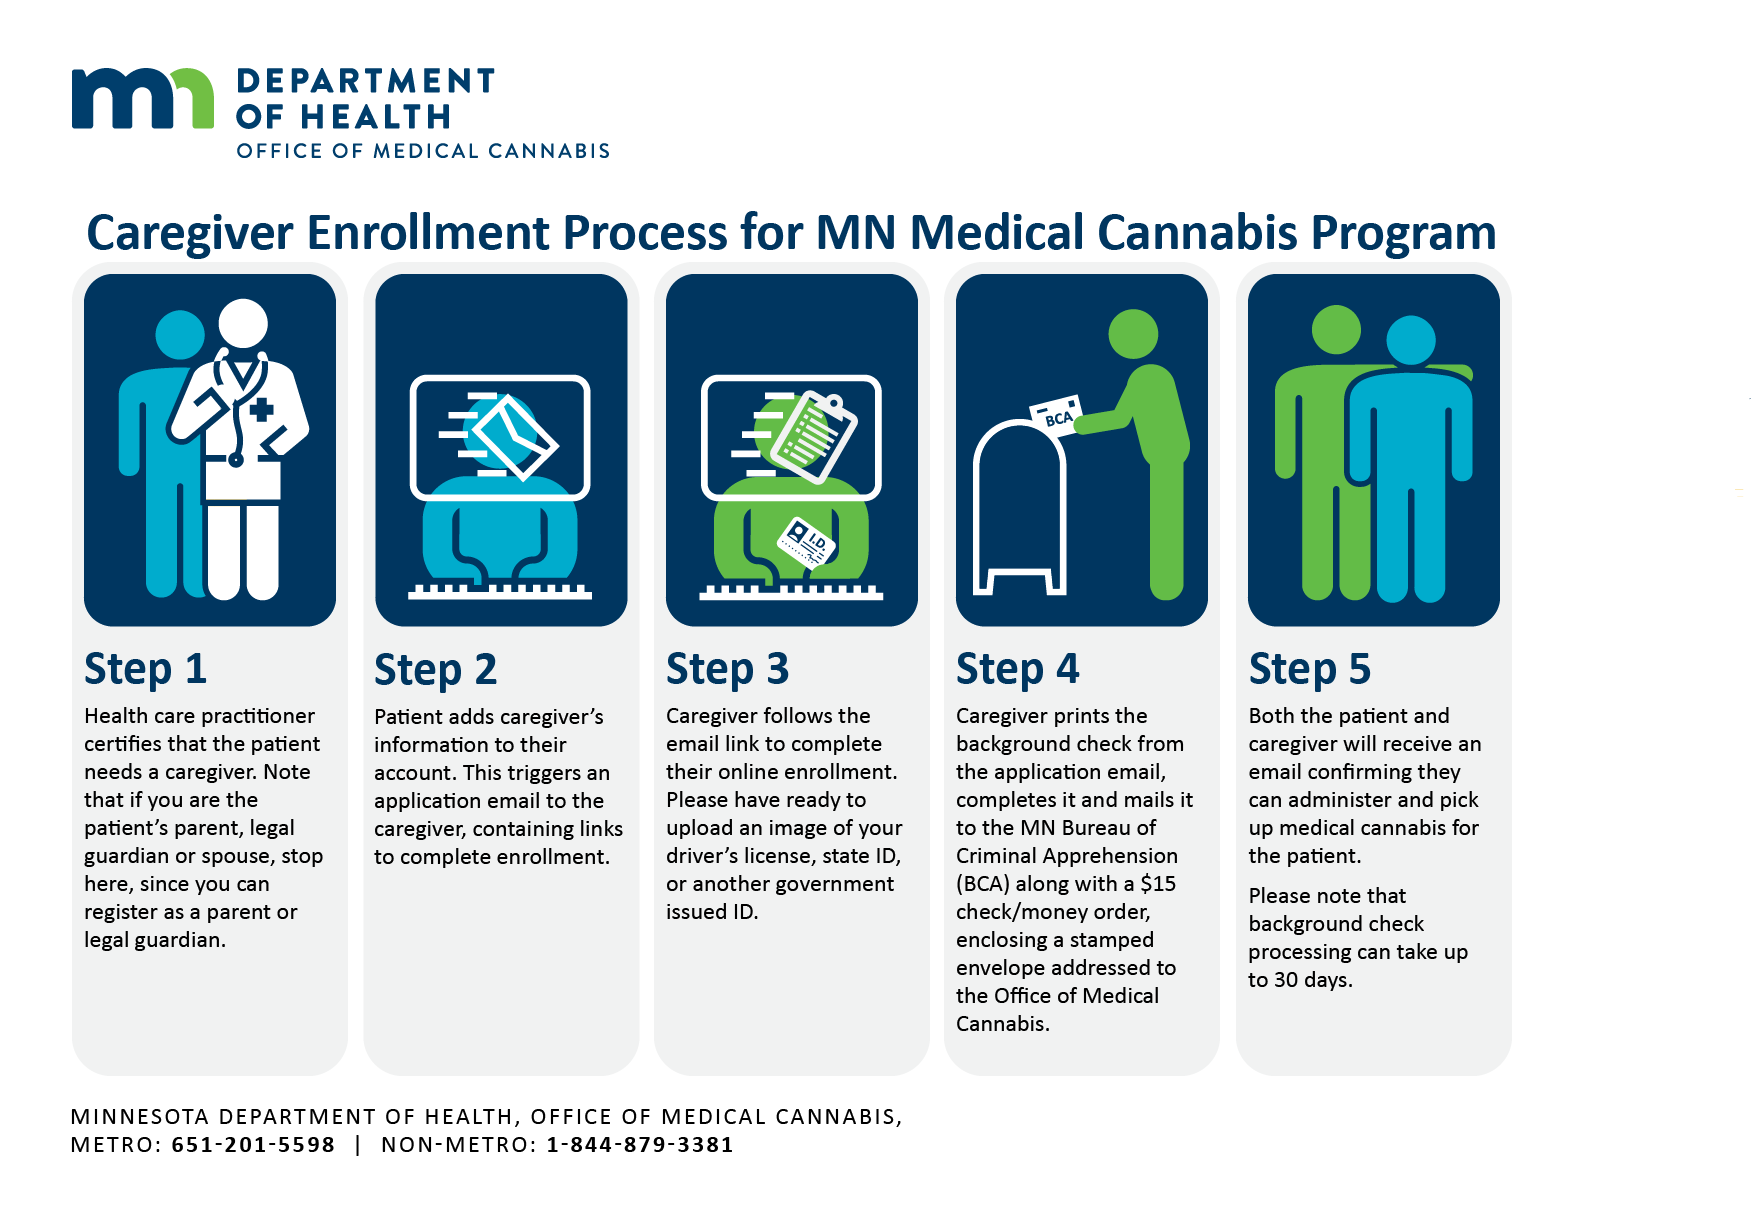 Why Parents Need To Be Patient With >> Caregivers Medical Cannabis Program Minnesota Dept Of Health